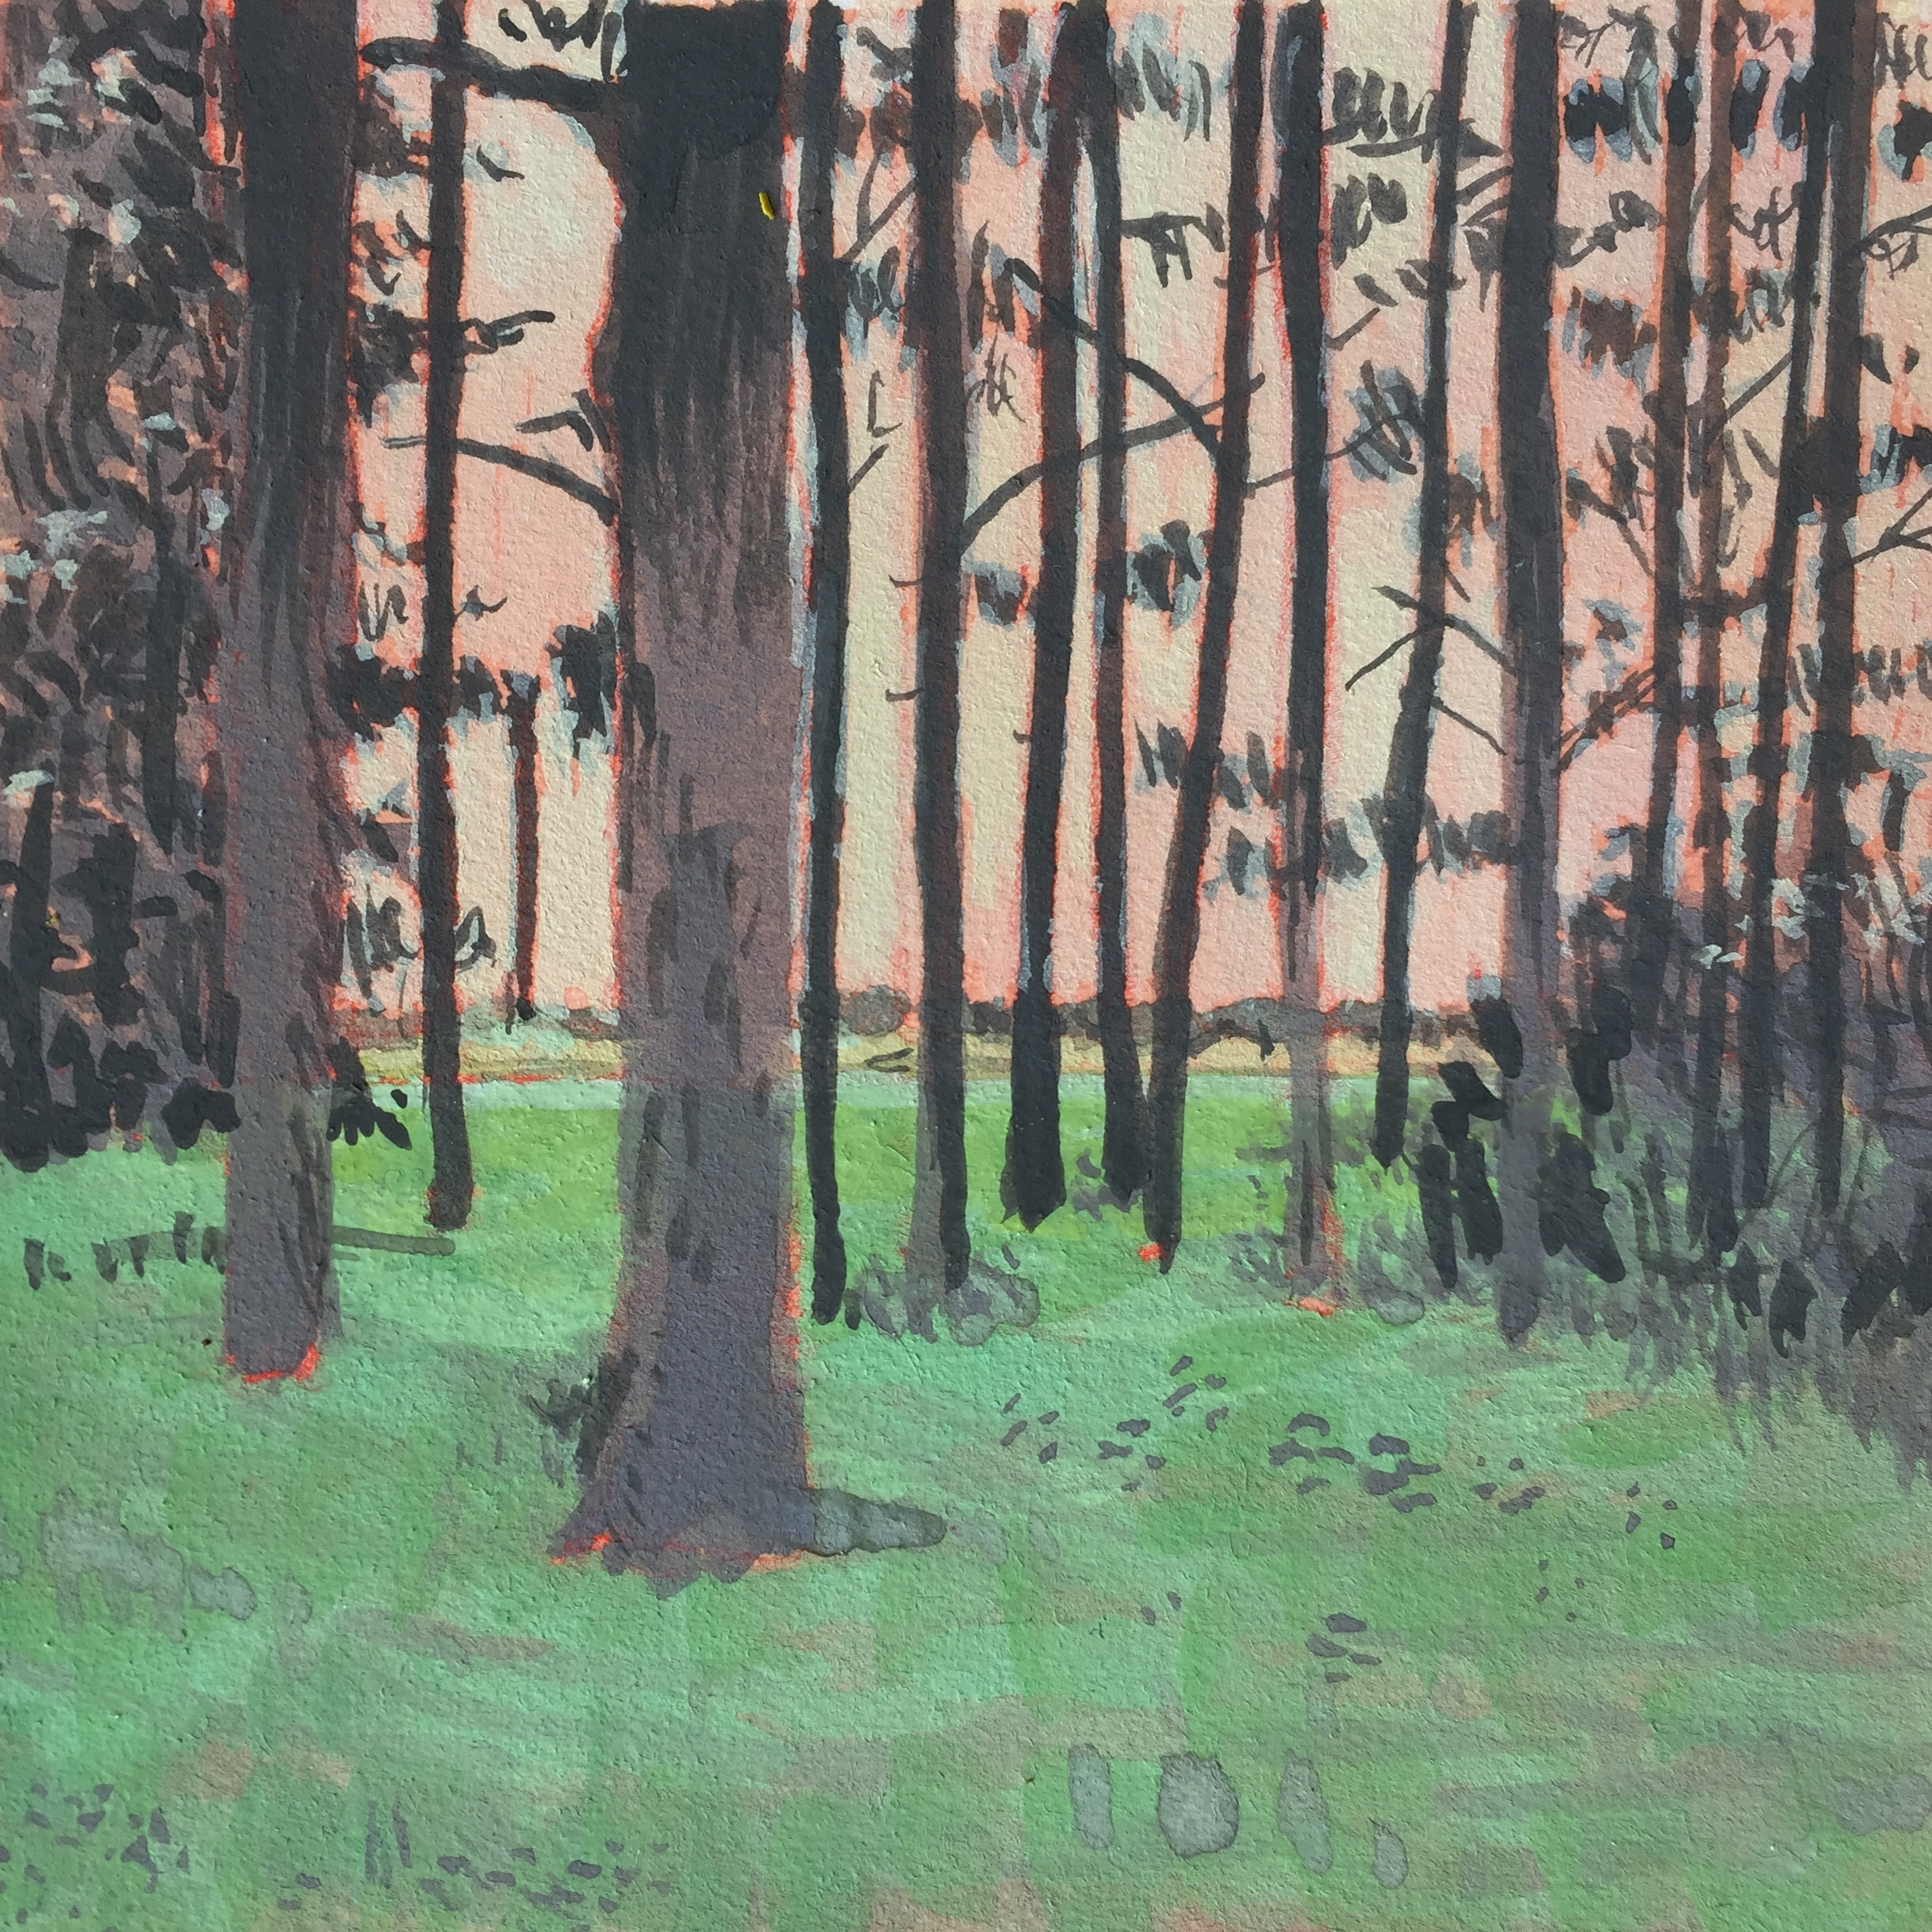 A gouache painting of pine trees at dusk. The sky is sort of pinky-orange-white behind the trees.